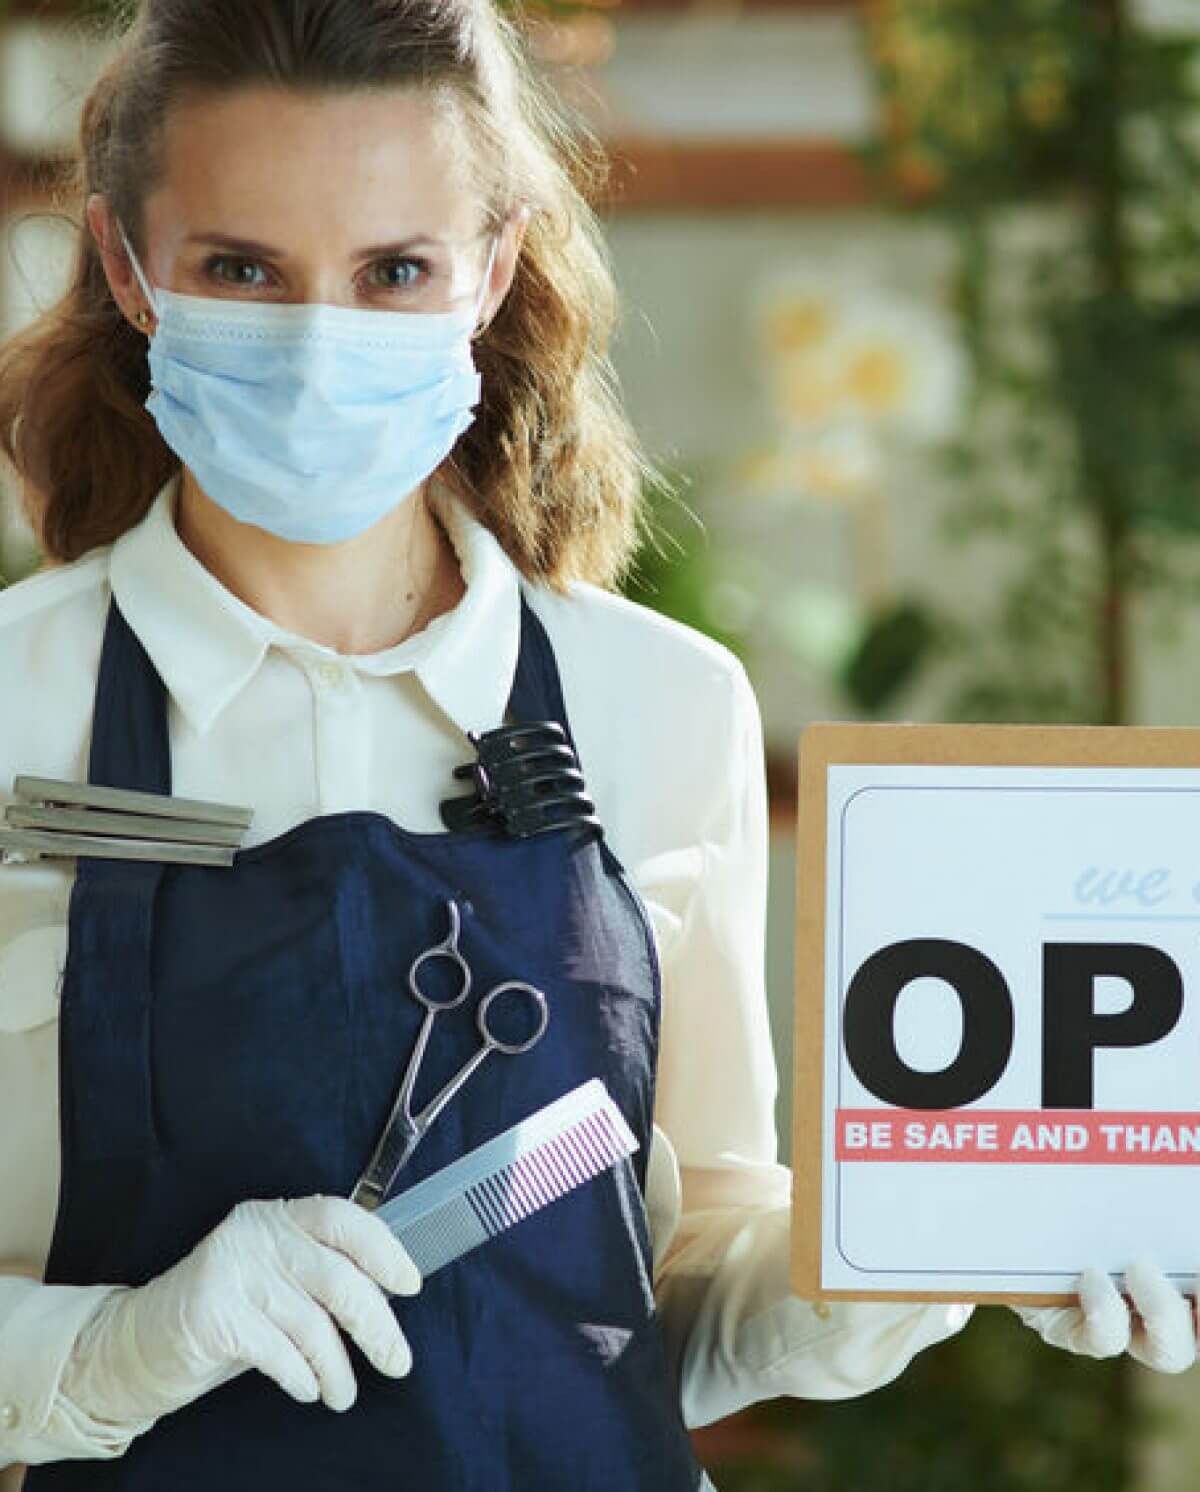 Returning to the workplace during the COVID-19 pandemic